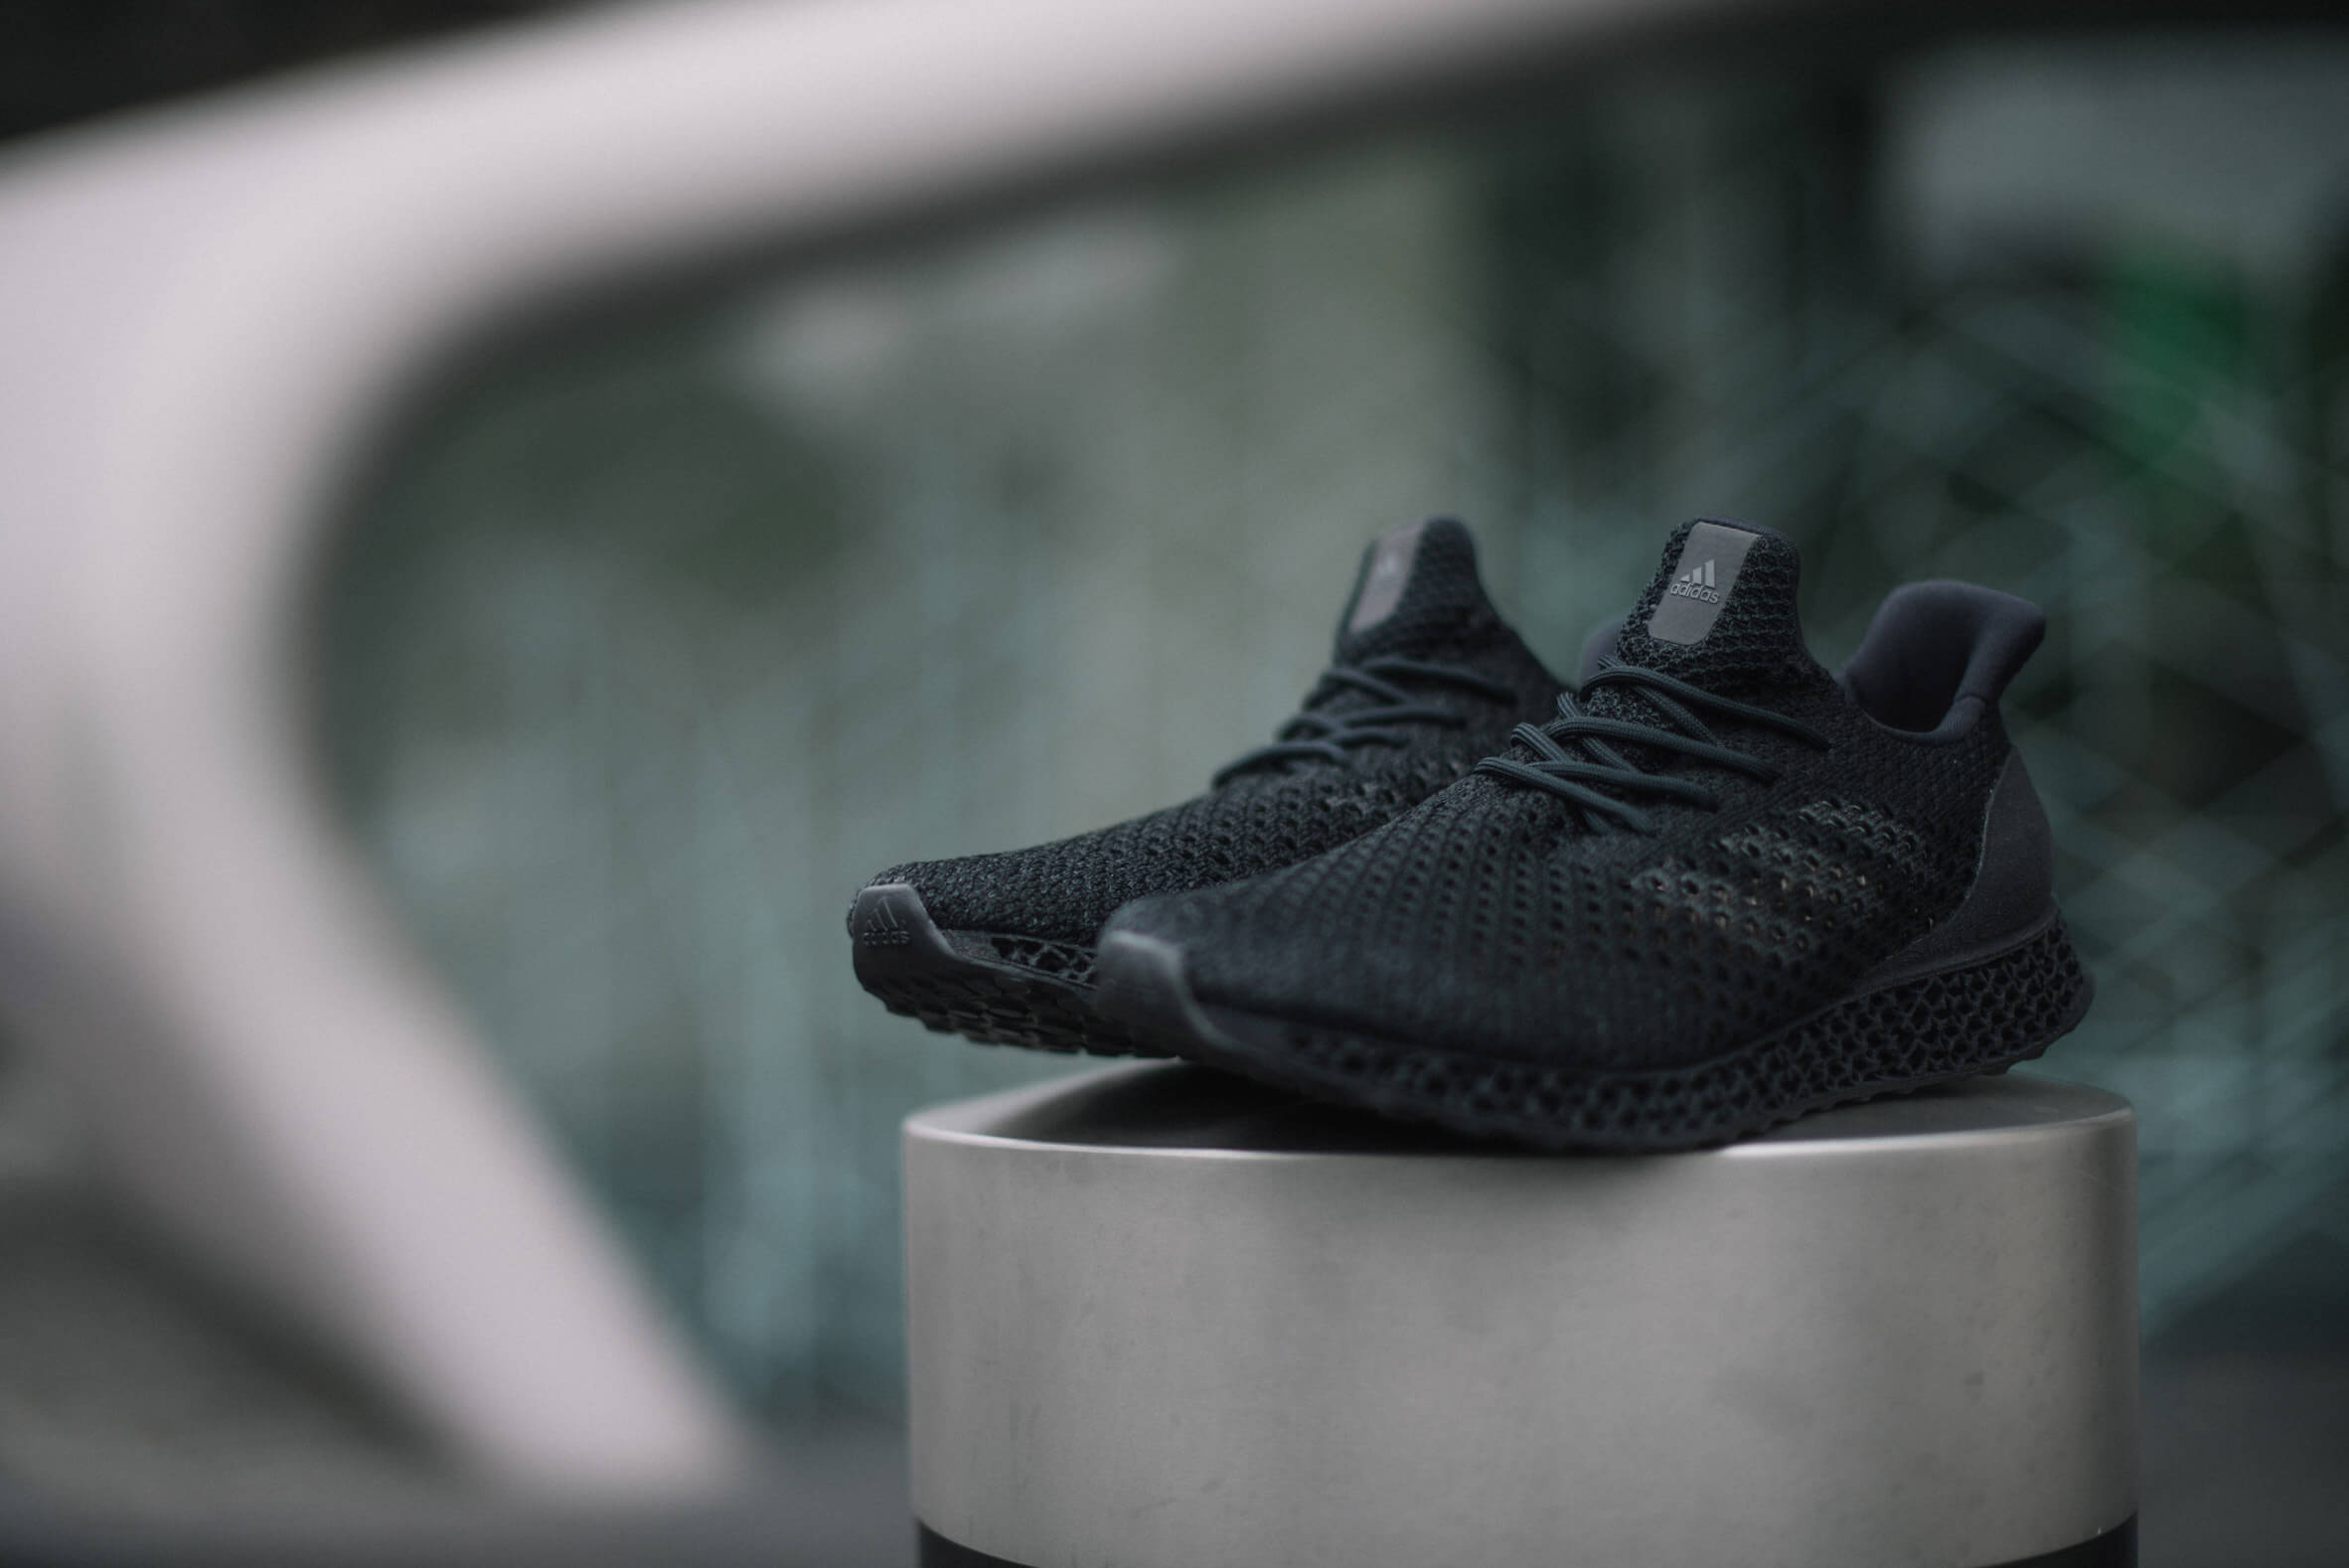 adidas-3d-printed-shoes-fashion-design-technology_dezeen_2364_col_4